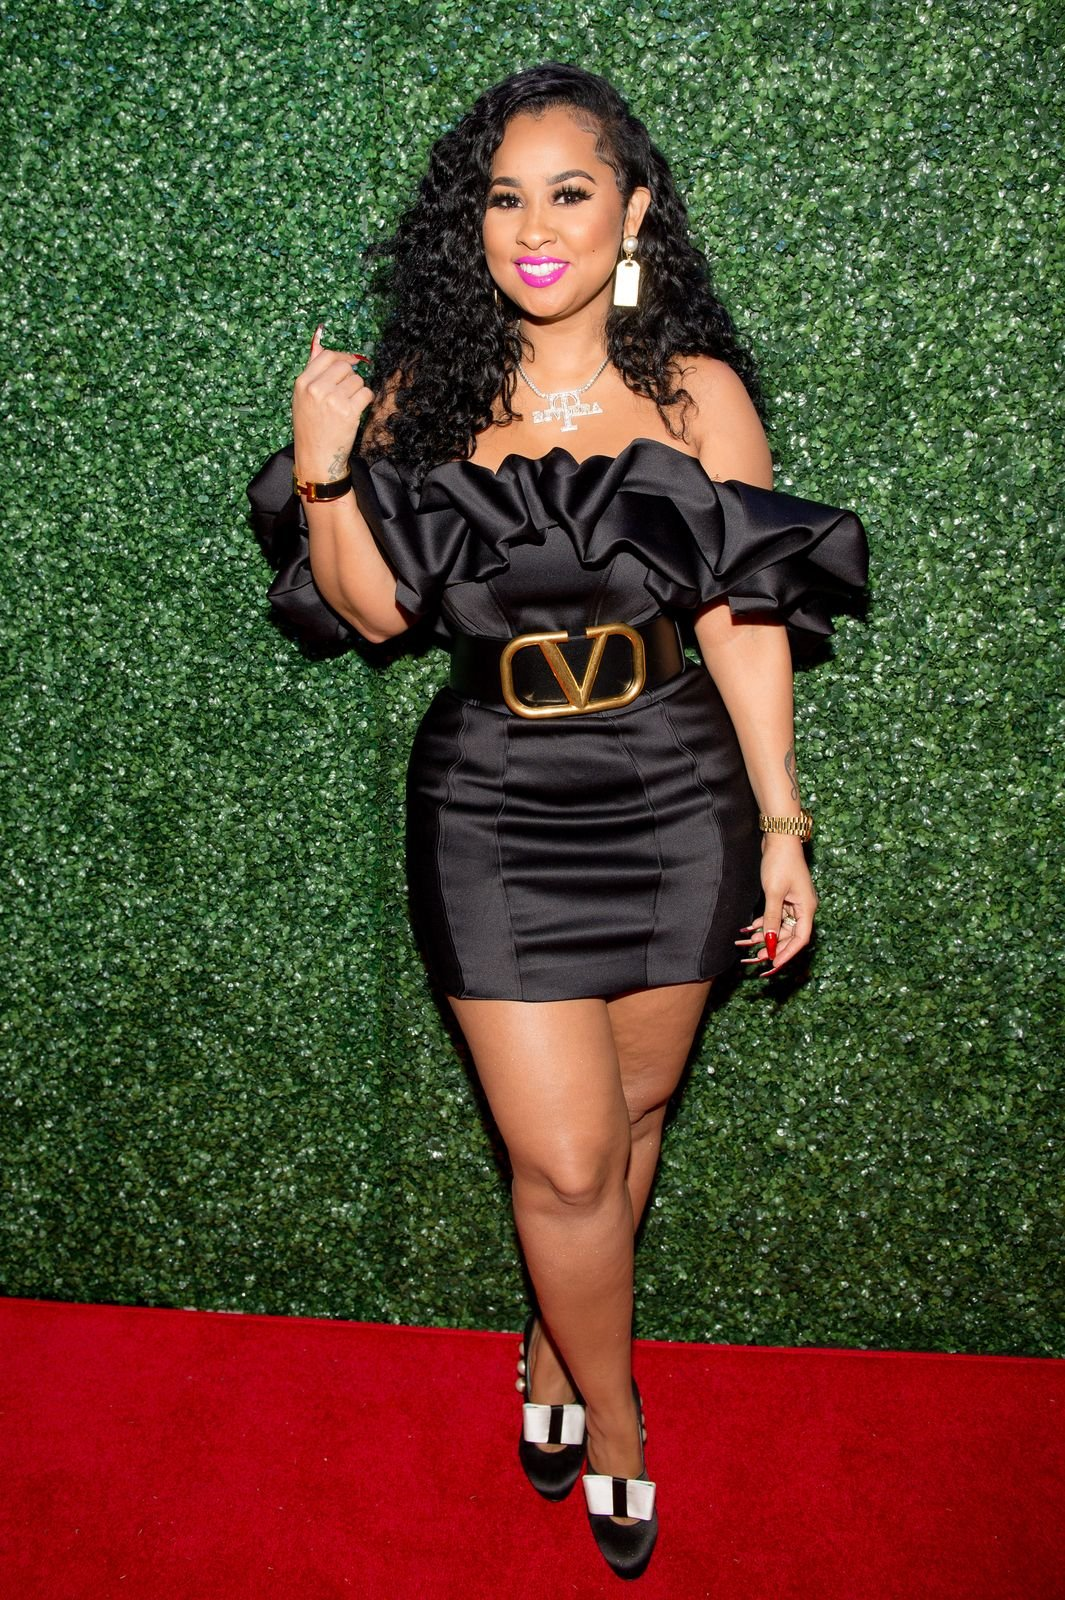 Tammy Rivera during her private album listening party at Lips on February 18, 2020 in Atlanta, Georgia. | Source: Getty Images